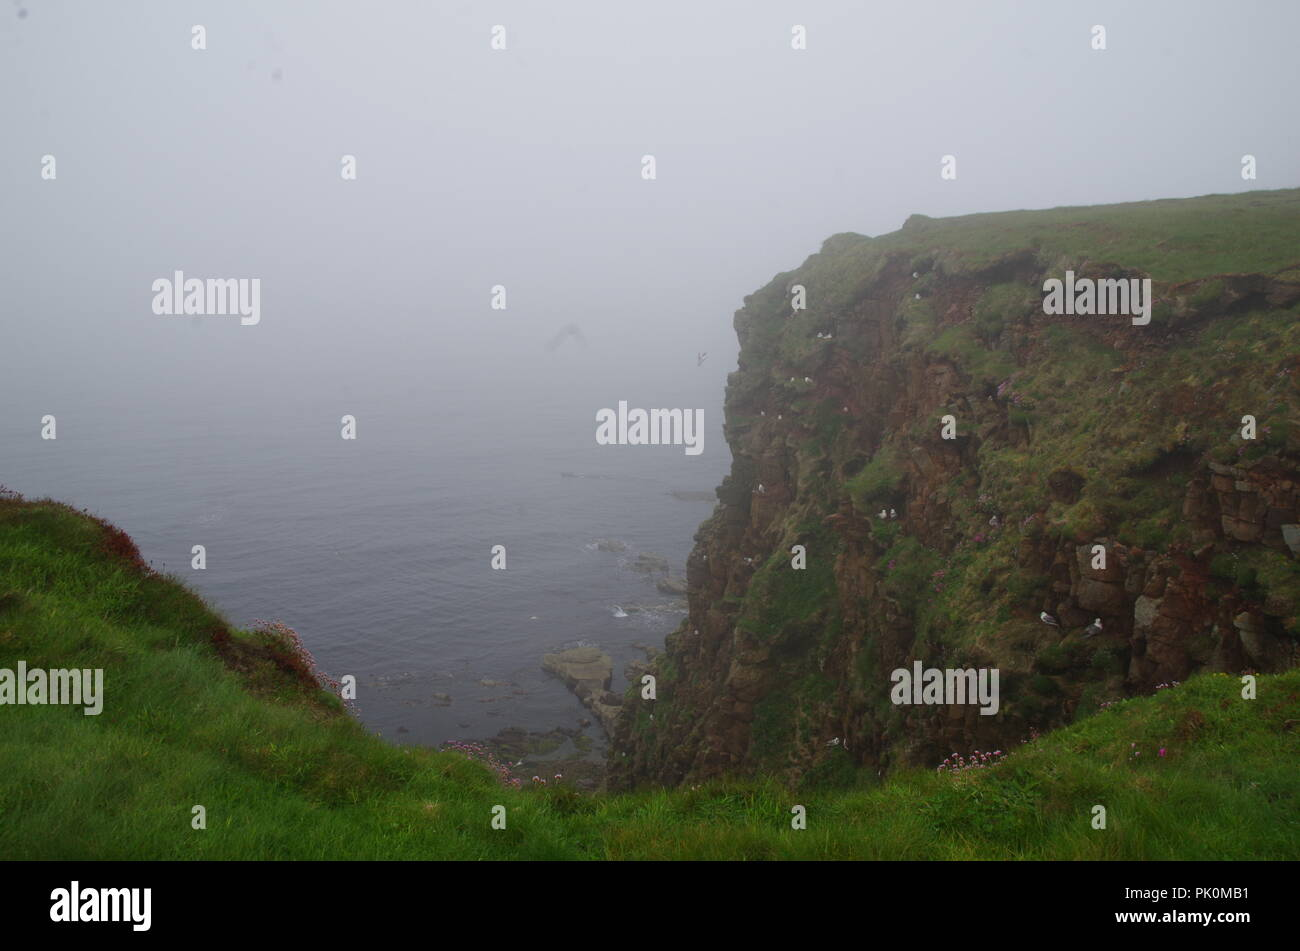 Duncansby Head. John o' groats (Duncansby head) to lands end. Cornwall. End to end trail. Caithness. Highlands. Scotland. UK - Stock Image